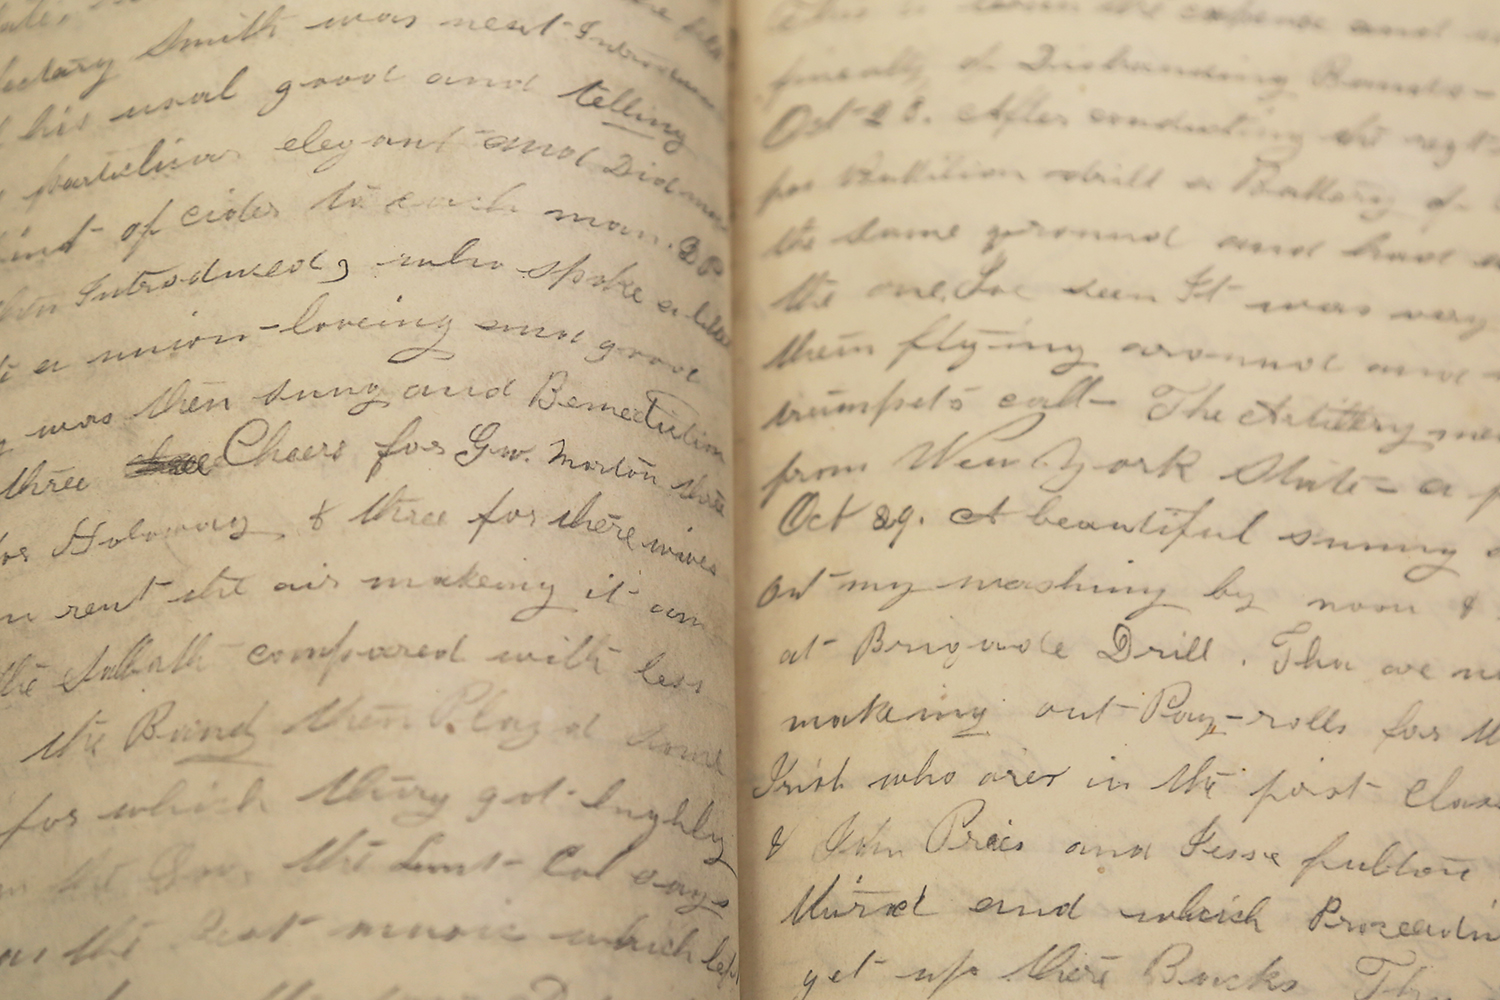 Civil war diary two pages of diary with no text